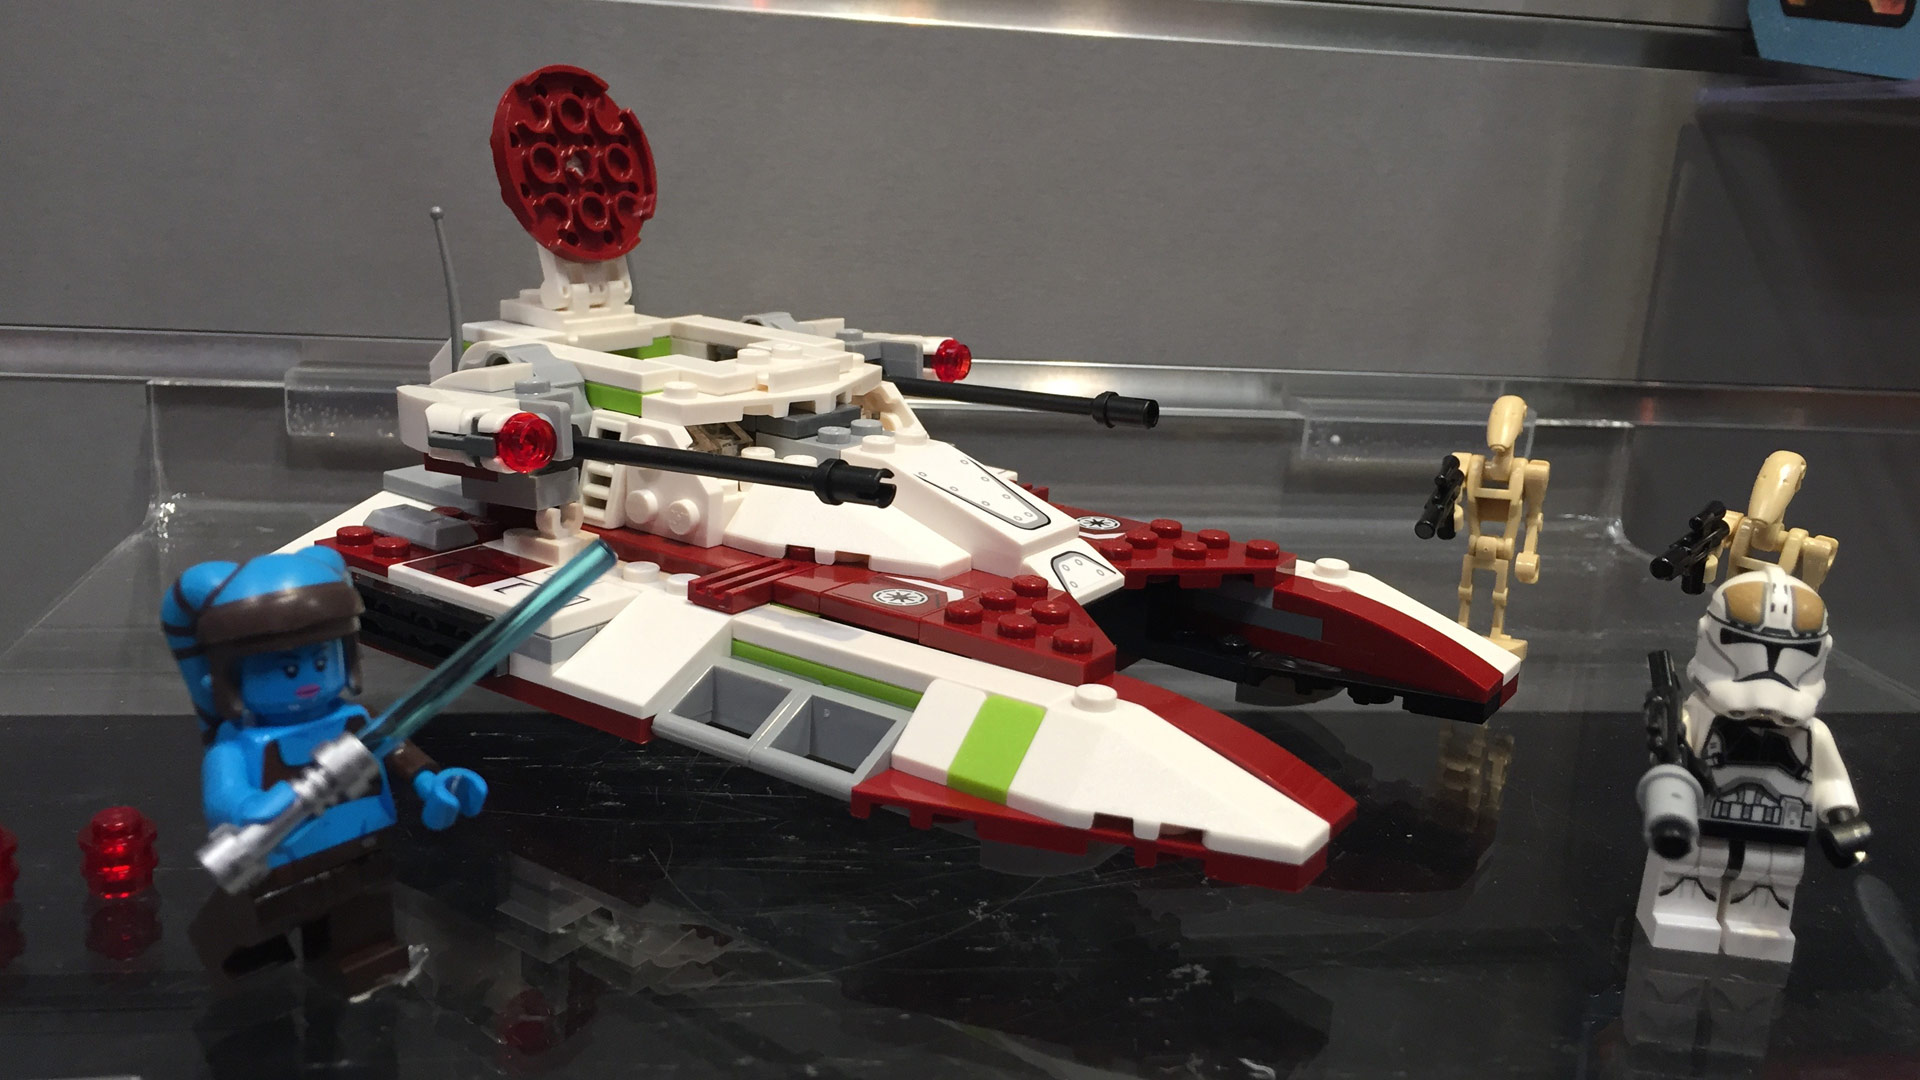 LEGO Star Wars Set 75182 Republic Fighter Tank at Toy Fair 2017